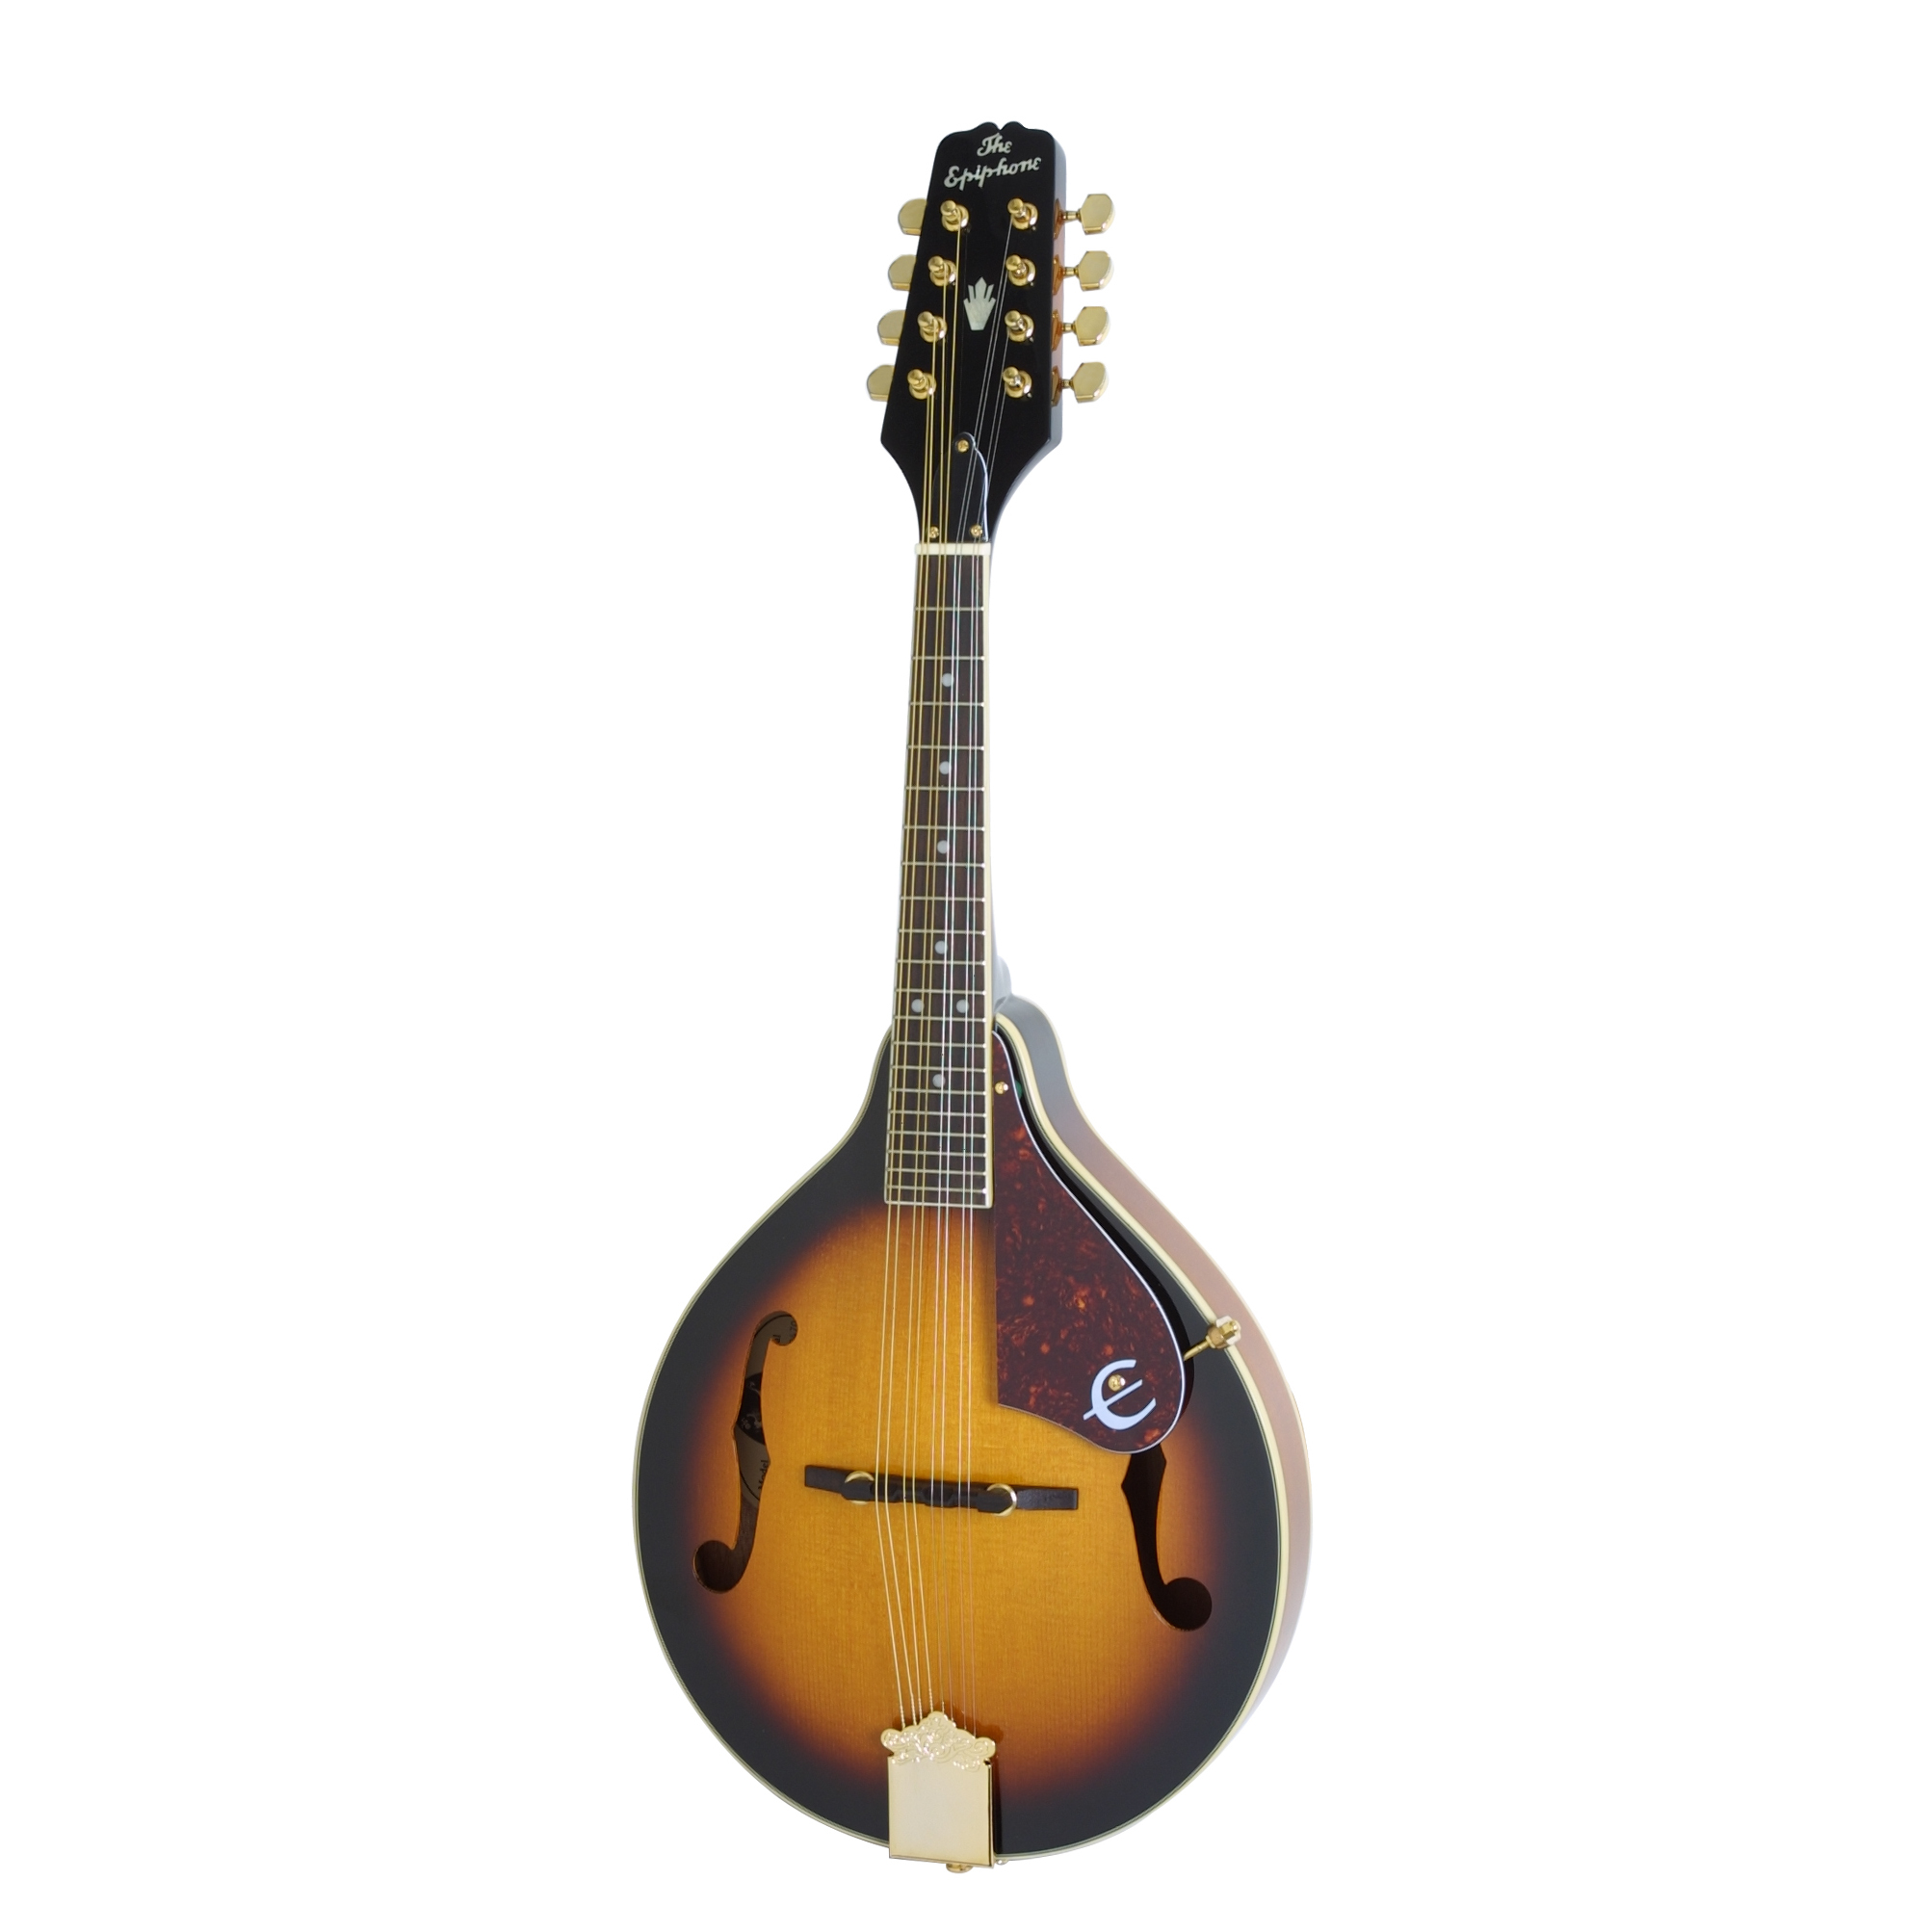 Epiphone MM-30S A-Style Mandolin - Antique Sunburst Guitar